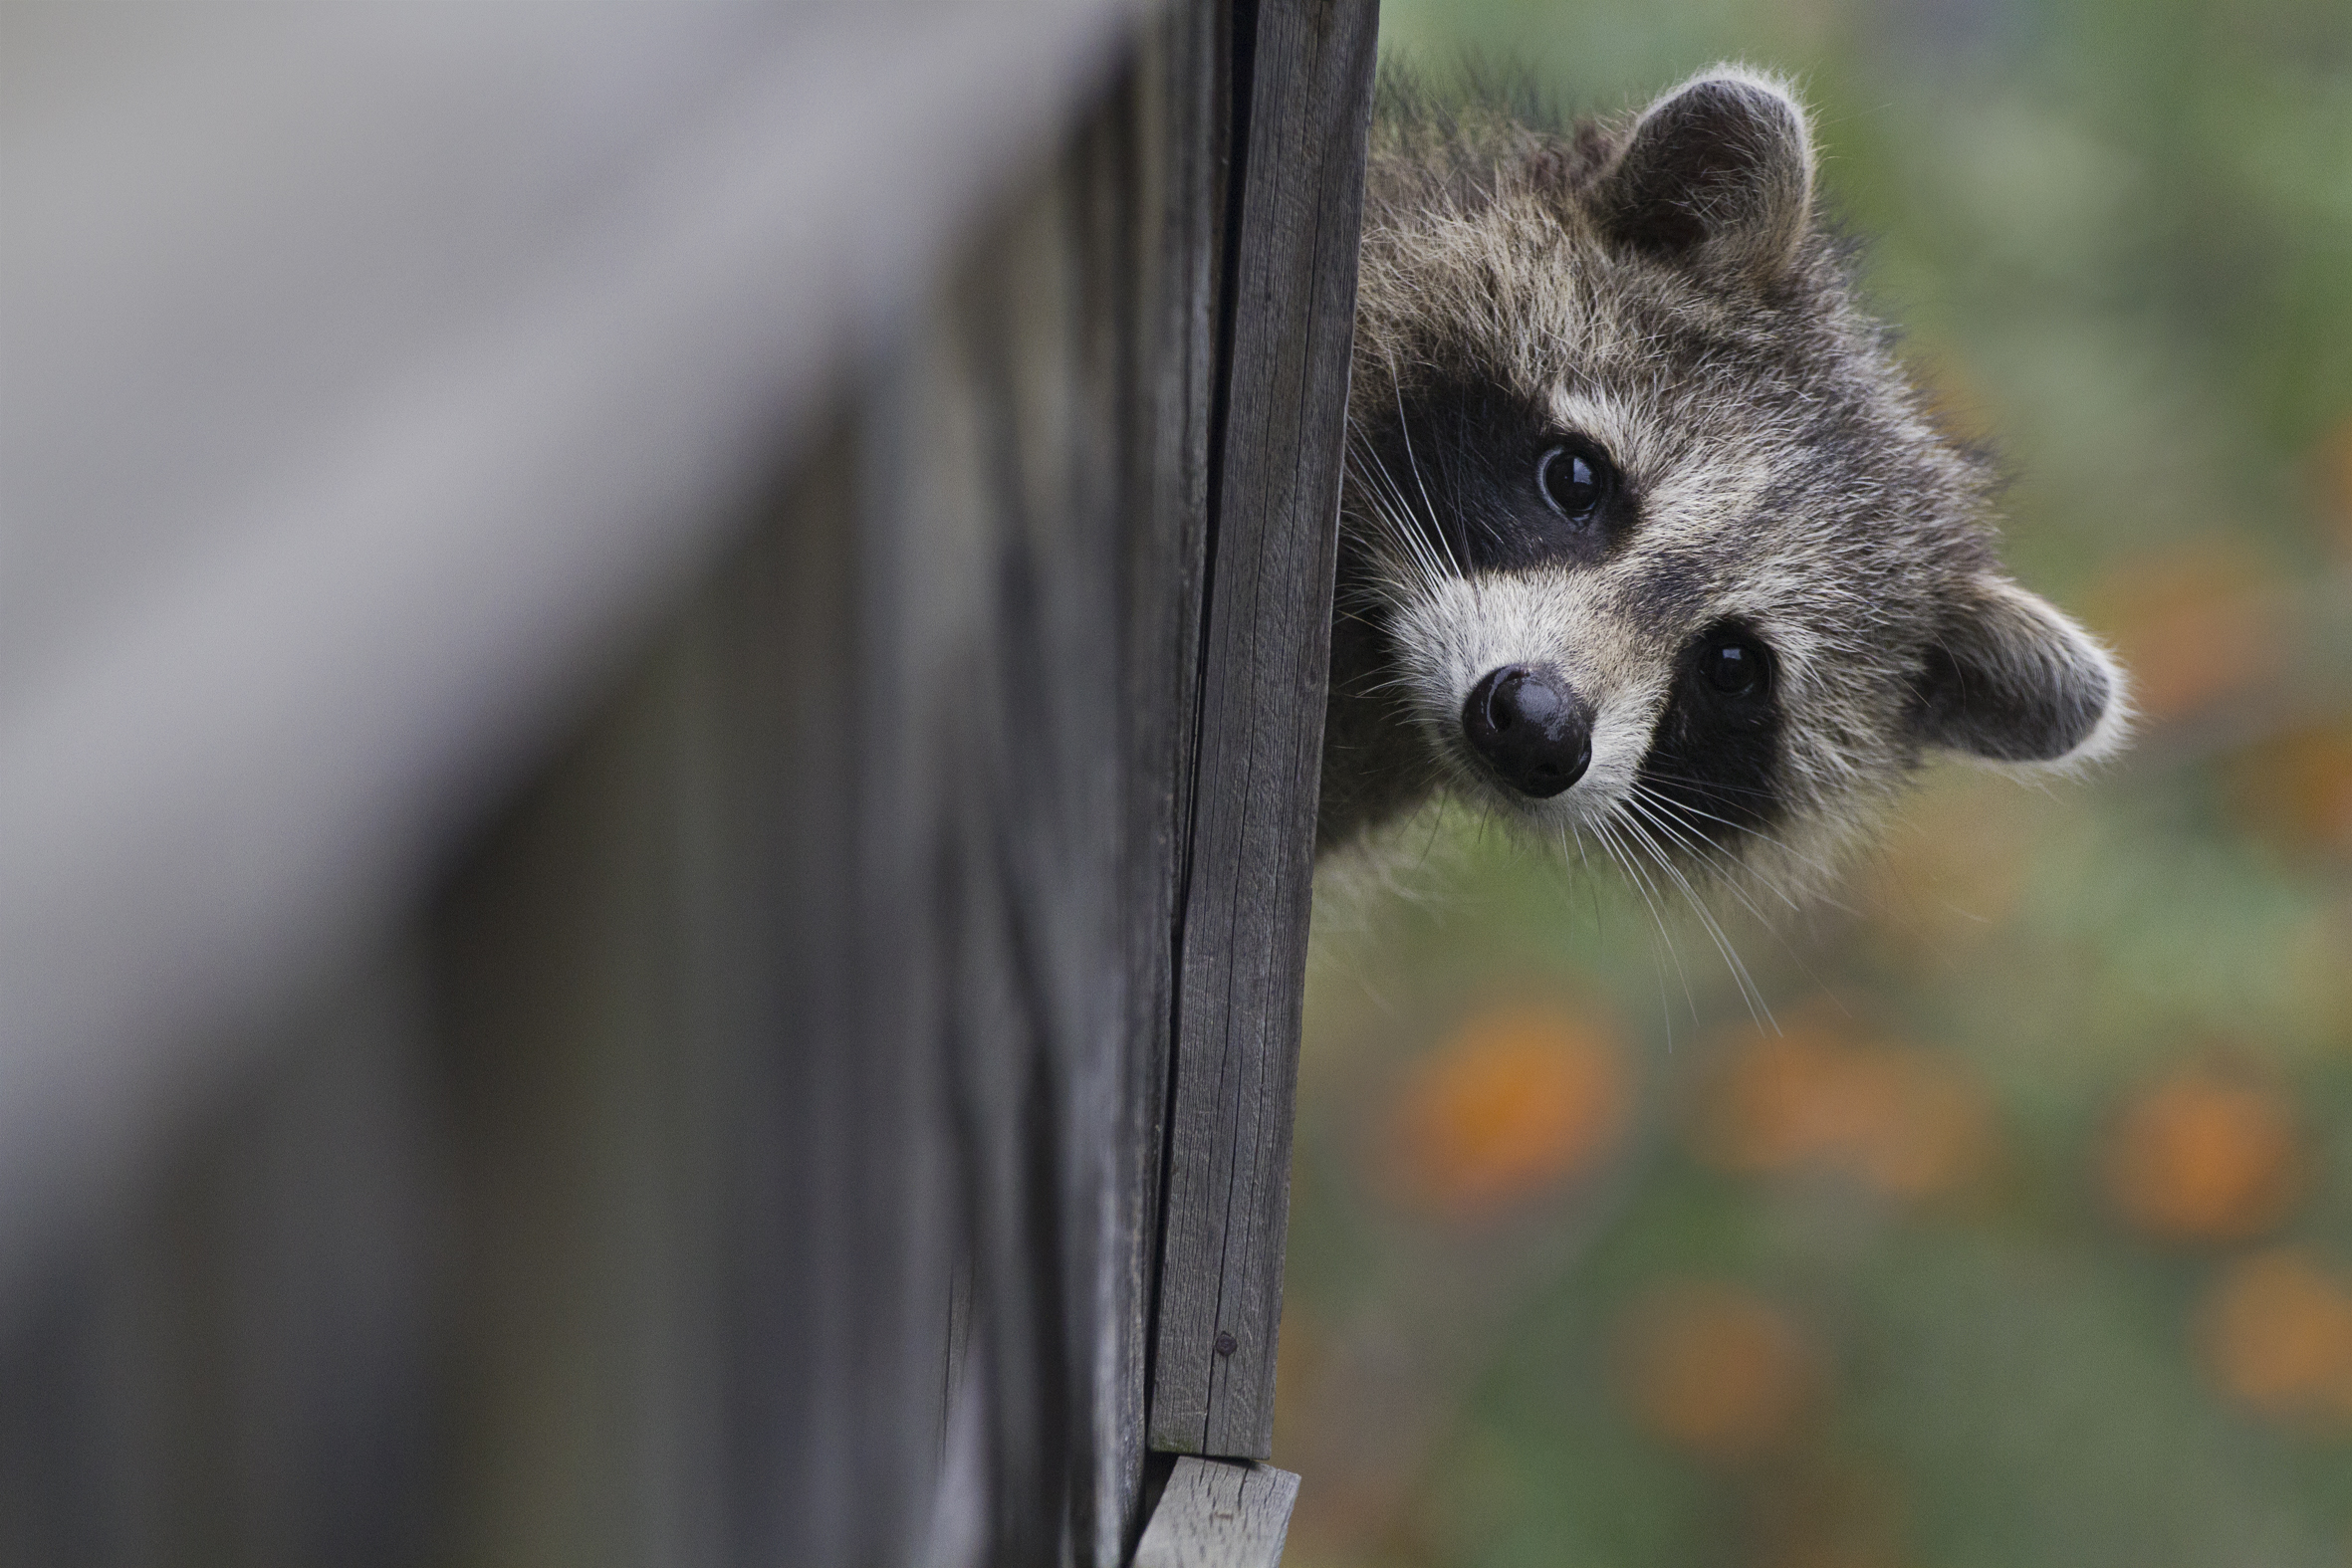 Raccoon on the porch, Toronto, Canada